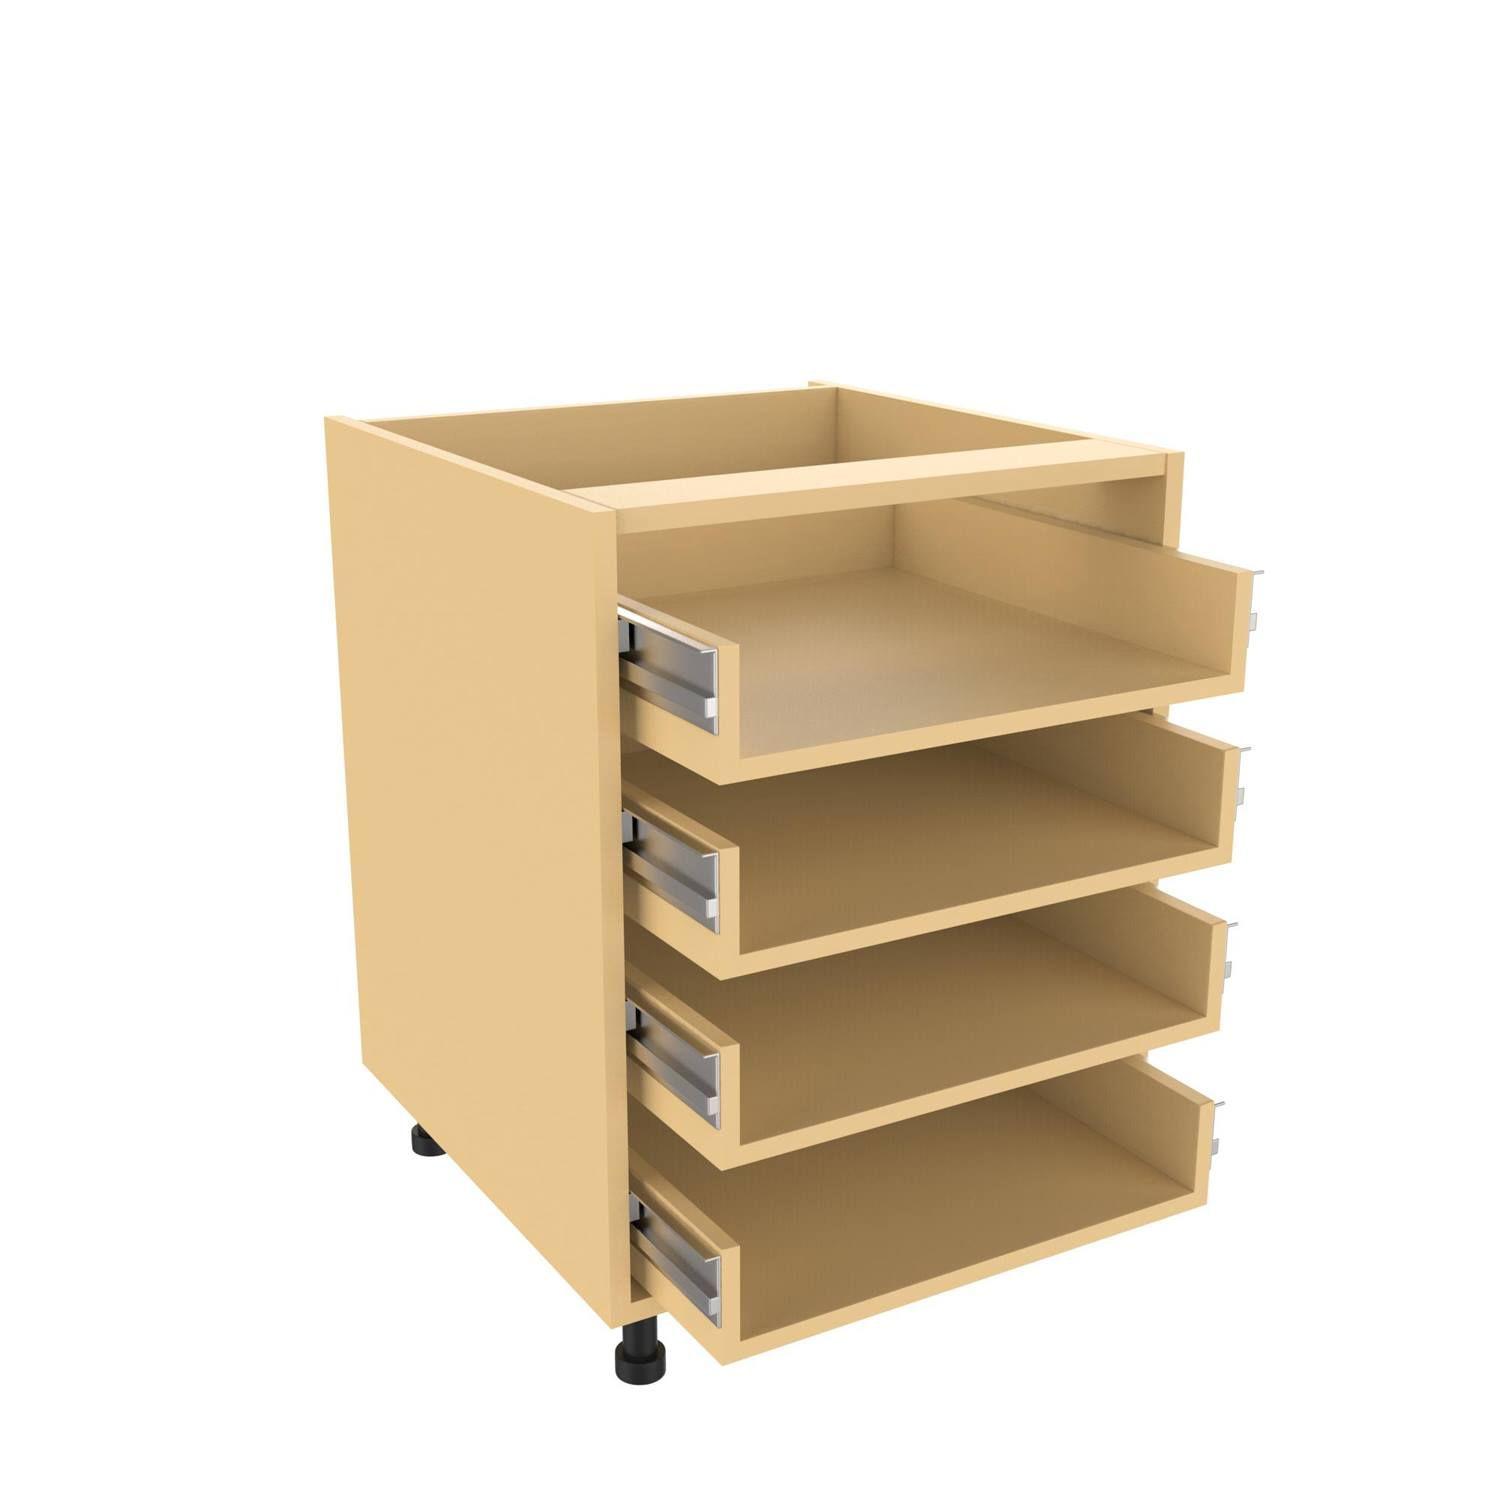 We Make Base And Wall Units In Any Size Drawer Packs Tall Liance Housings Combination